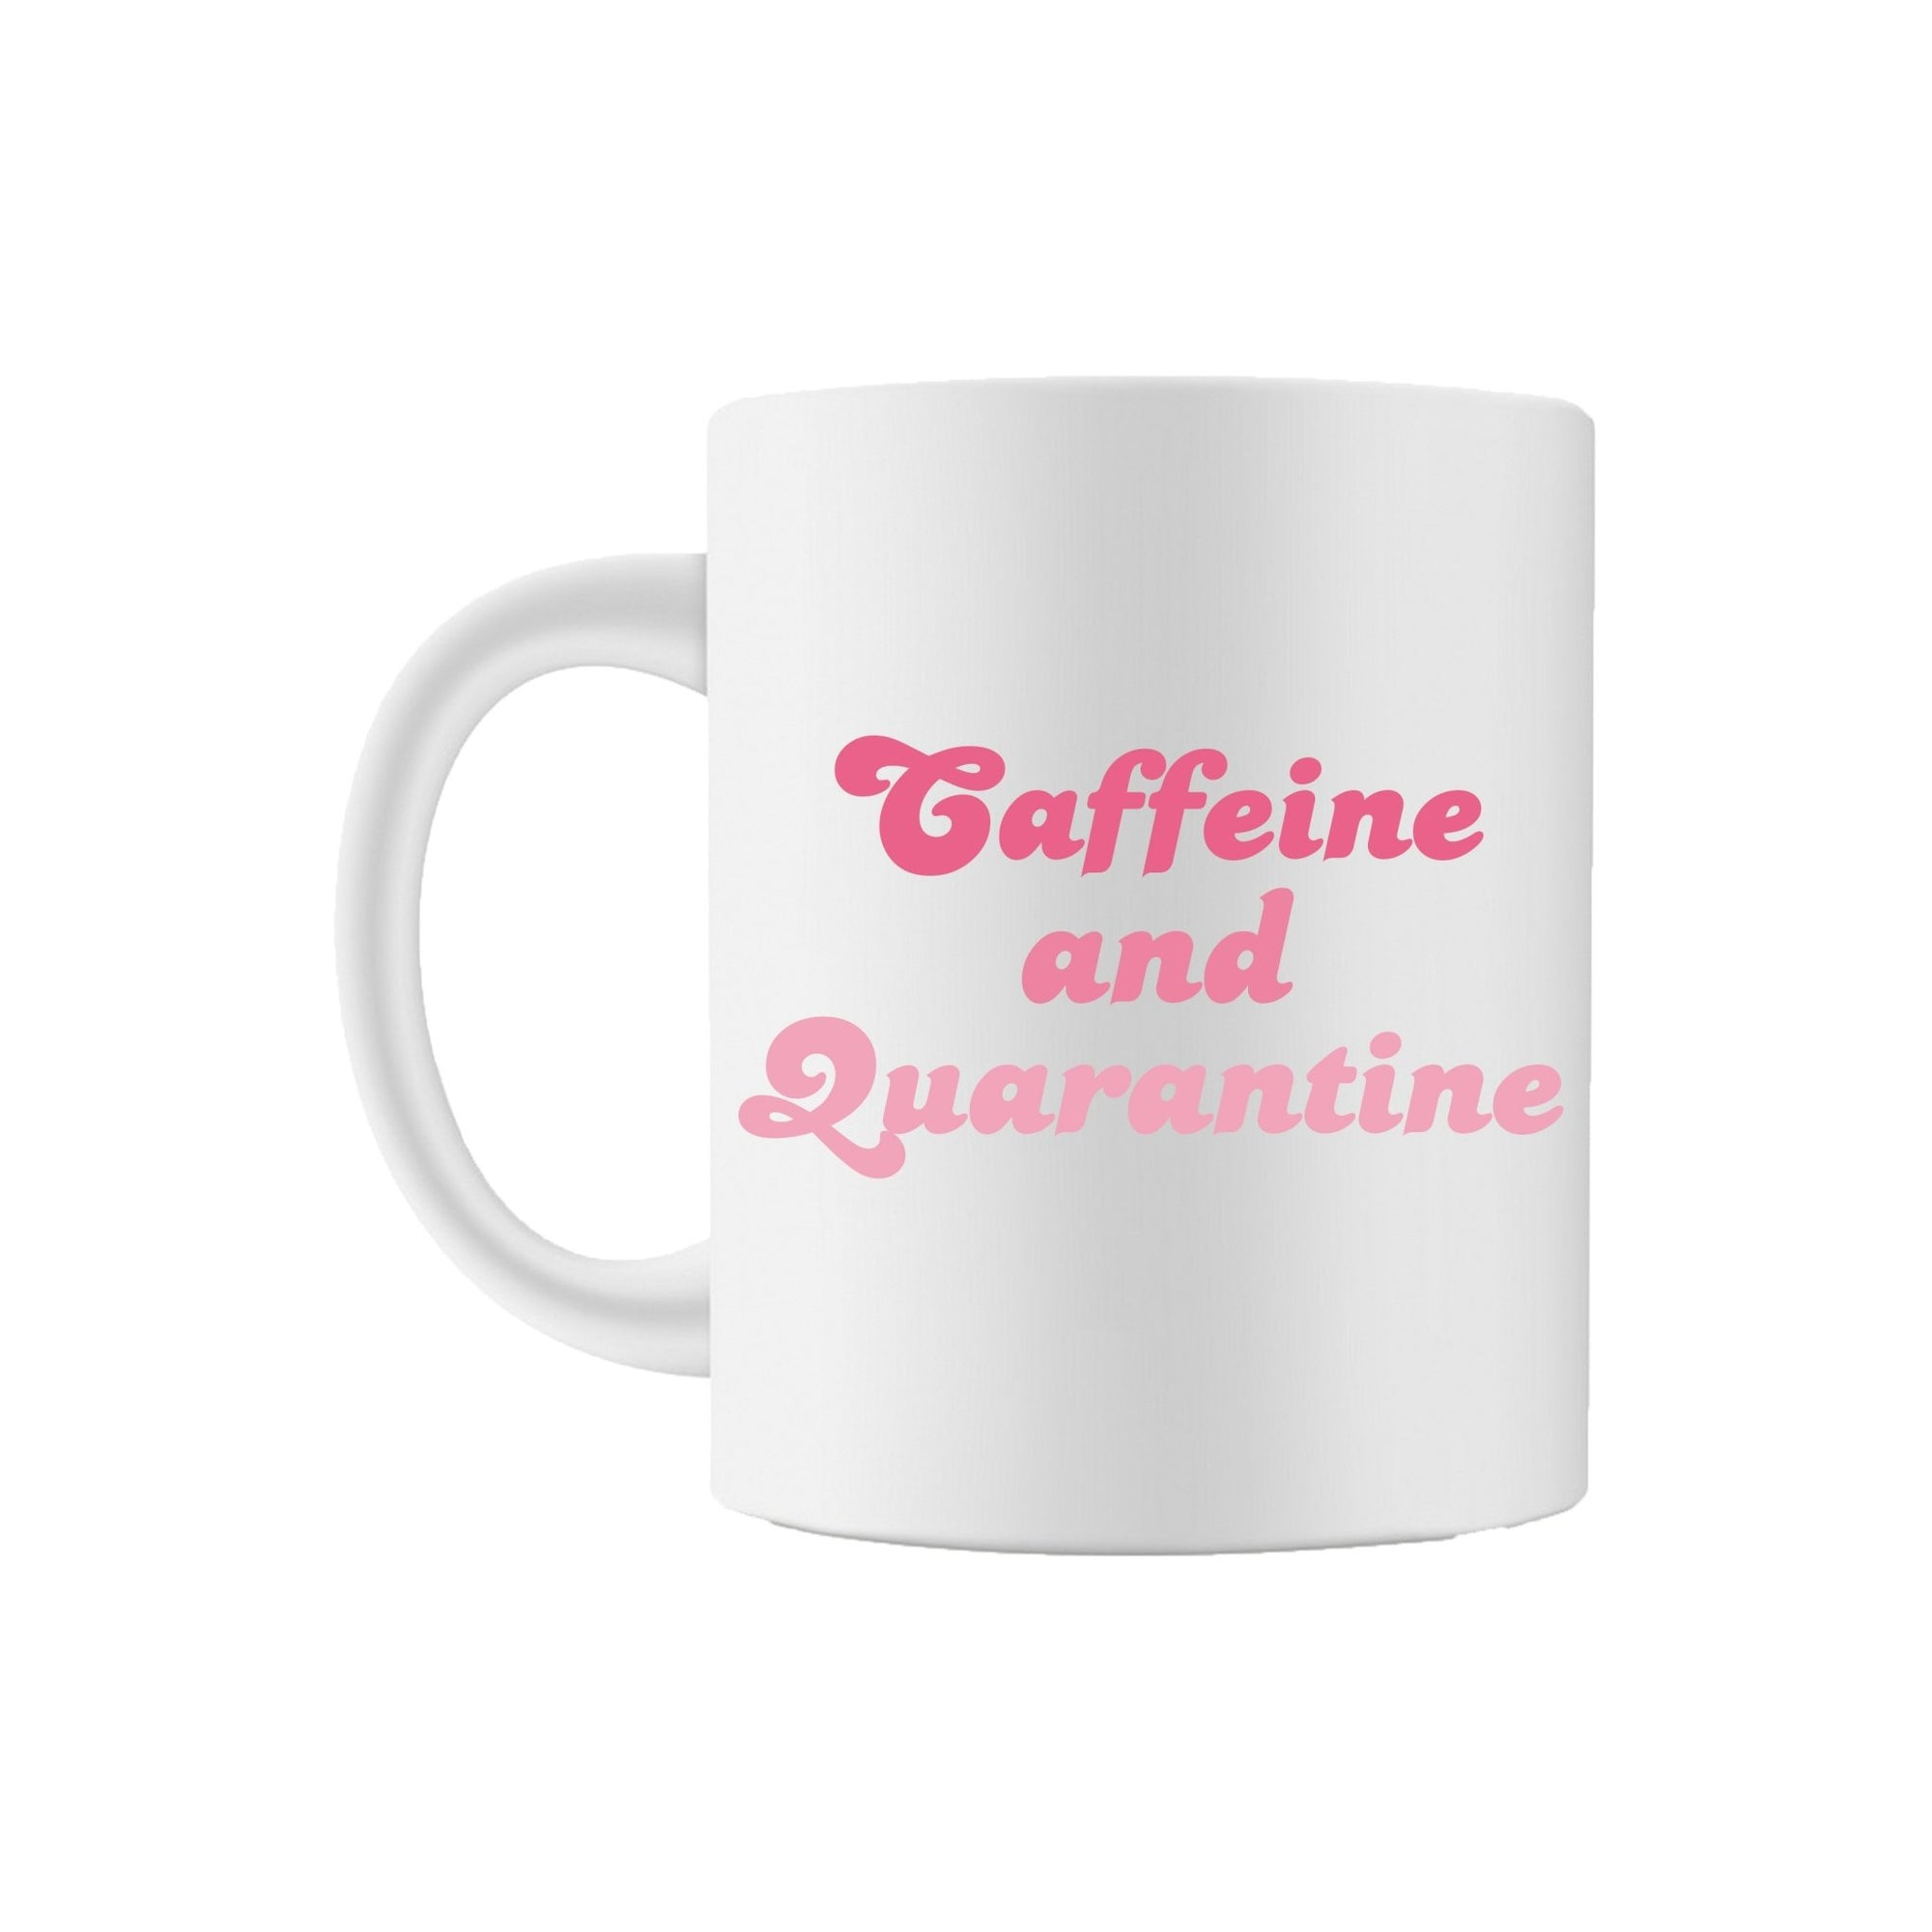 Caffeine and Quarantine Coffee Mug